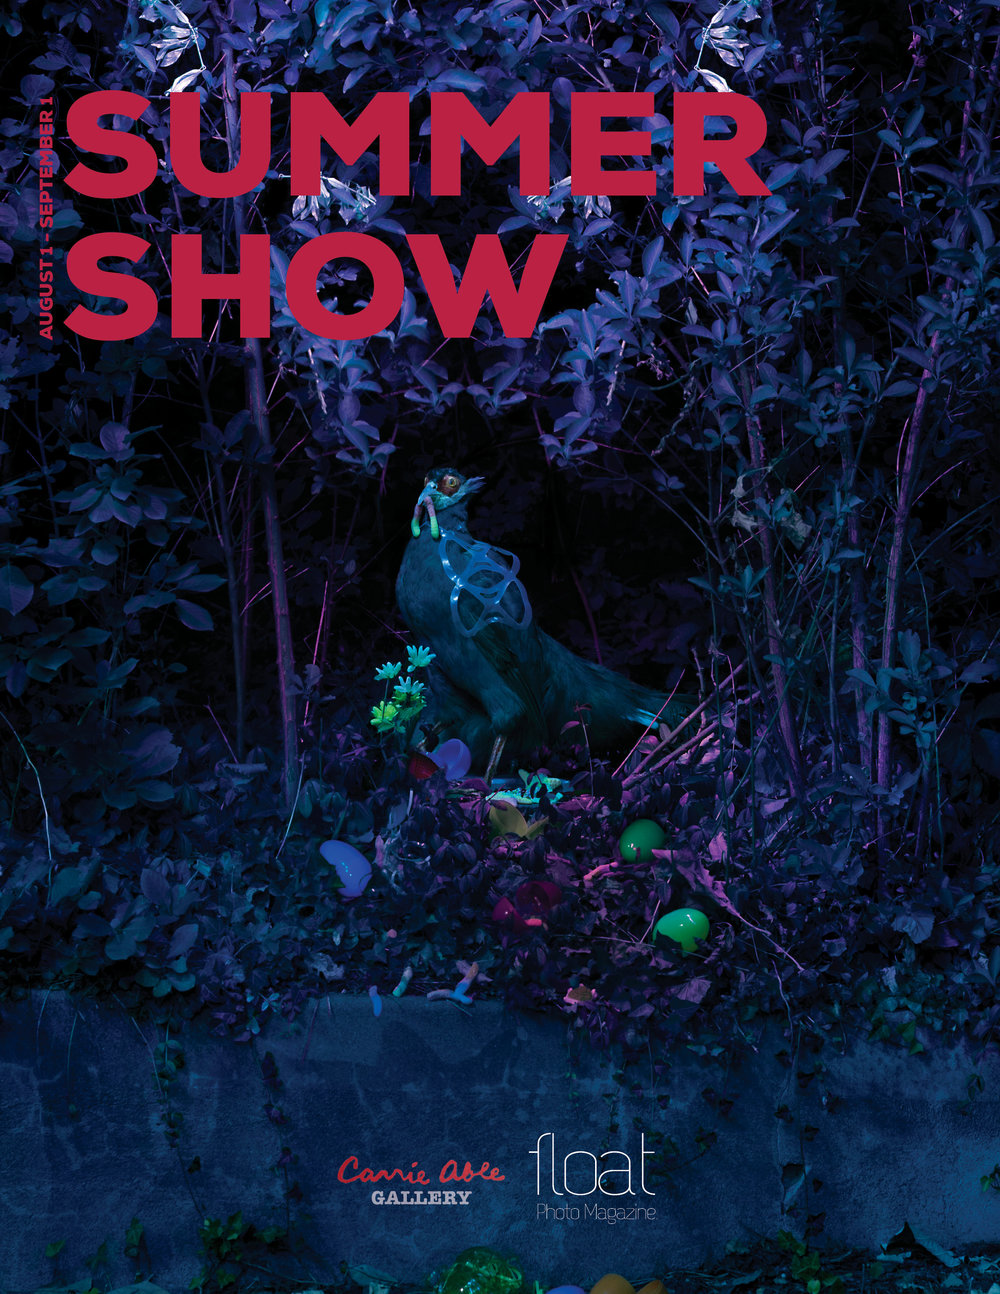 GROUP EXHIBITION   August 1st 2018 I Summer Show - Carrie Able Gallery x Float Photo I Carrie Able Gellery I NY, USA